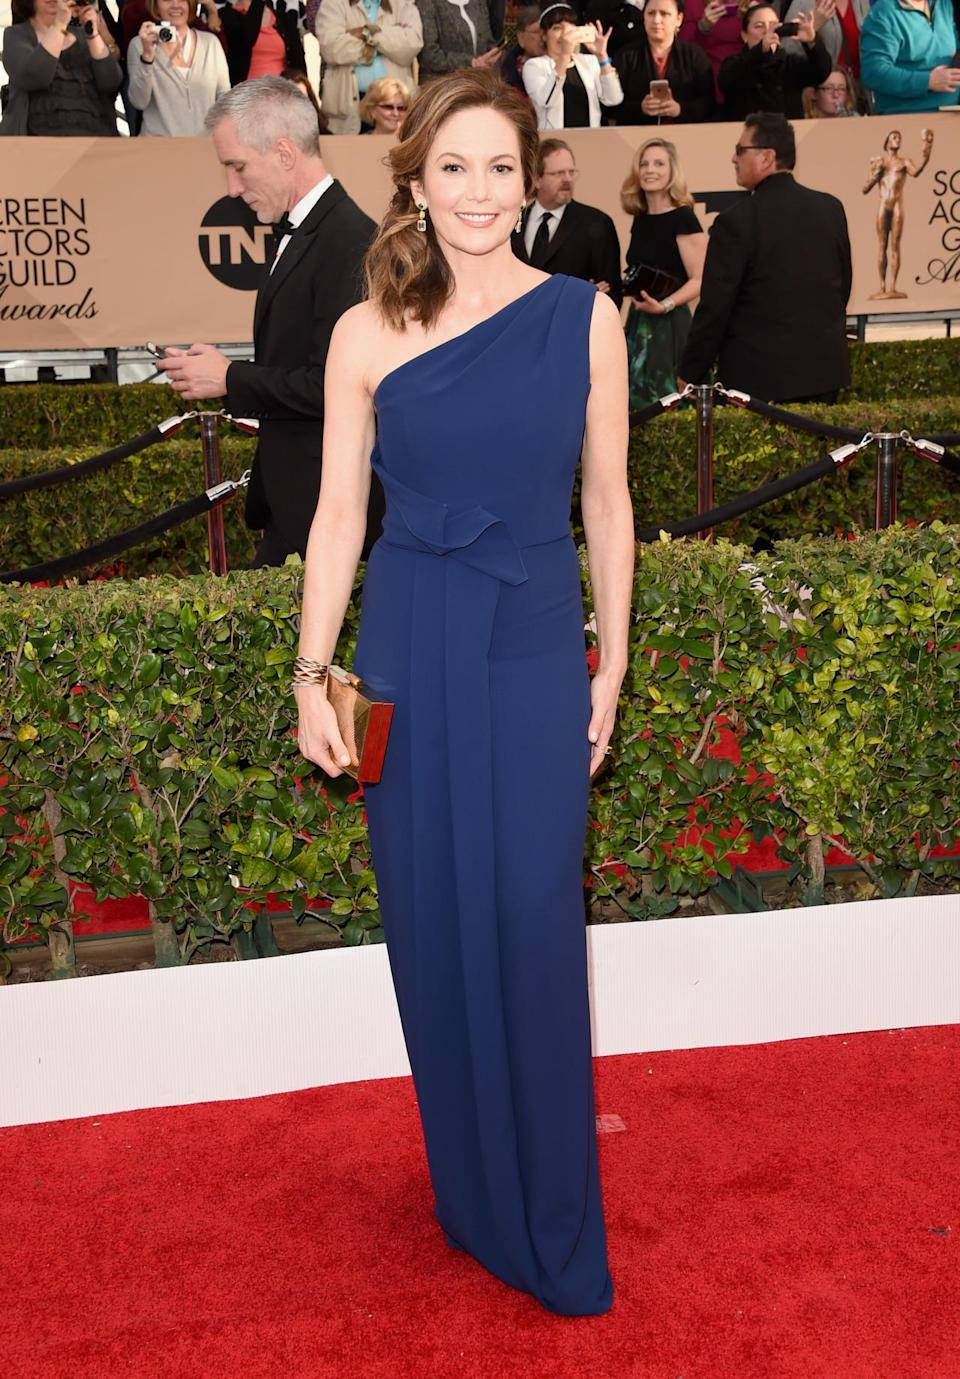 <p>Diane Lane's red carpet look was blue — but she looked anything but! And her gold clutch only added to the elegance of the ensemble. <i>Photo: Getty Images</i></p>